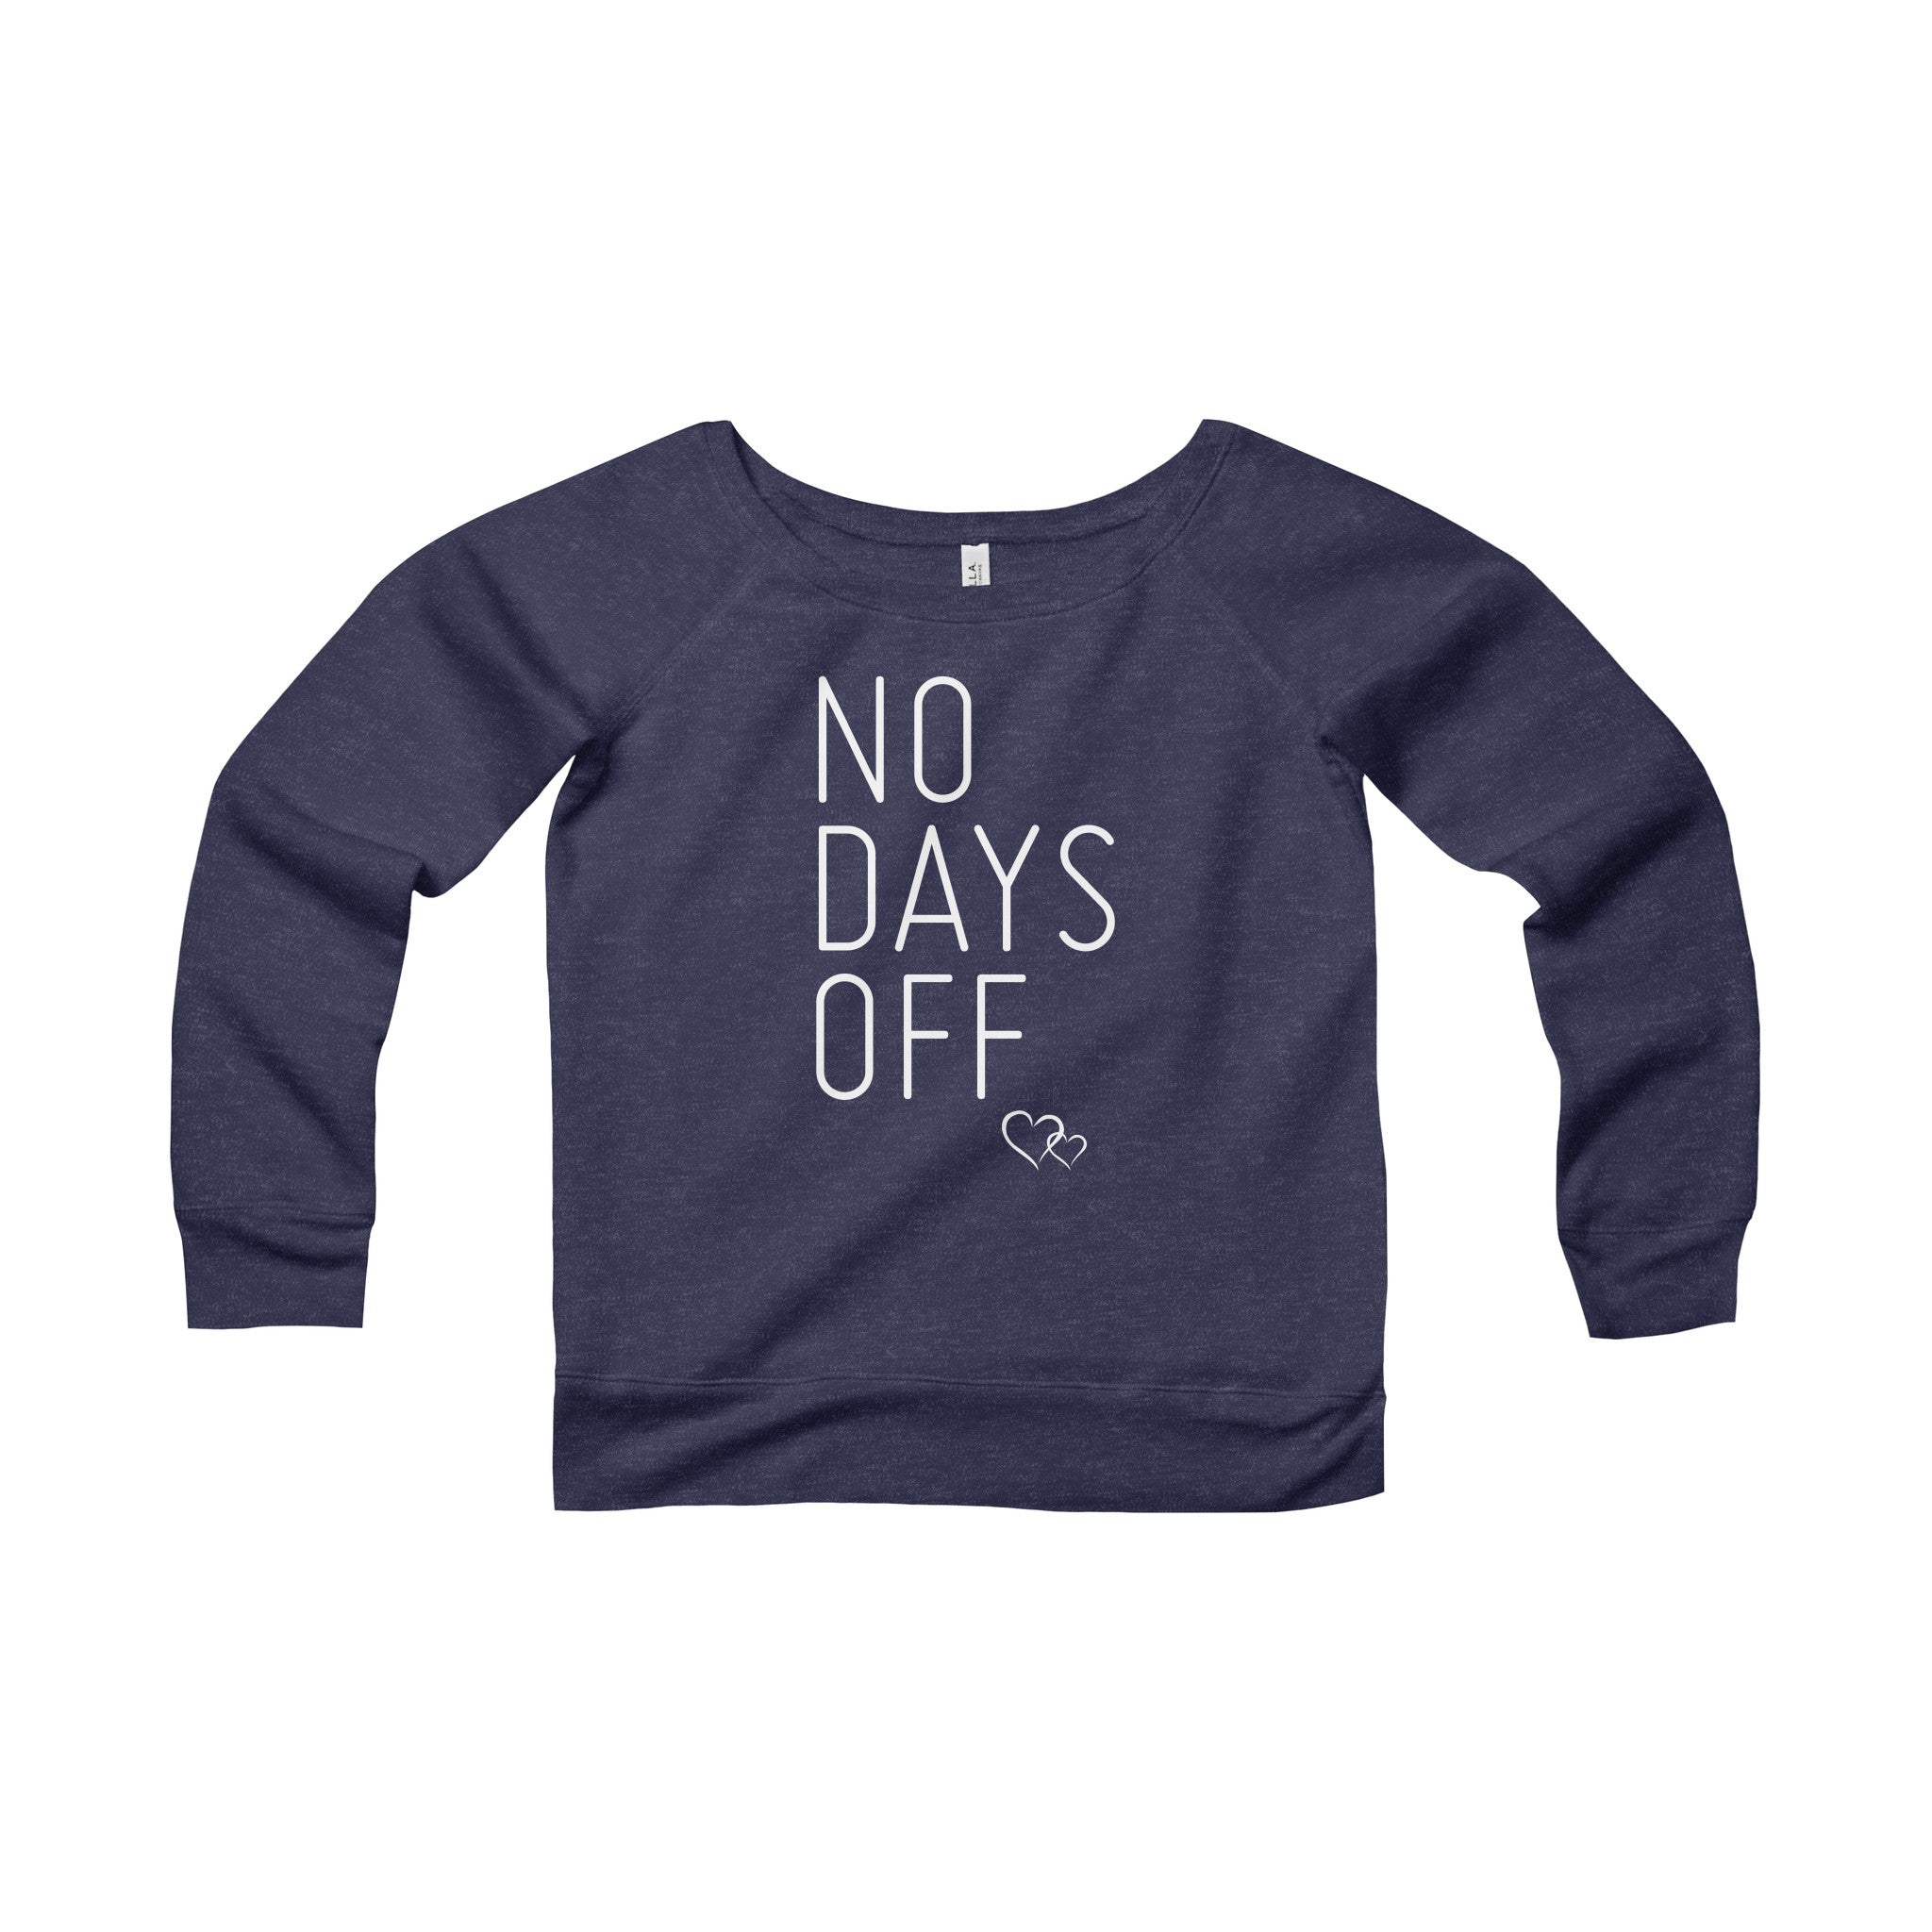 NO DAYS OFF - Wide Neck Sweatshirt